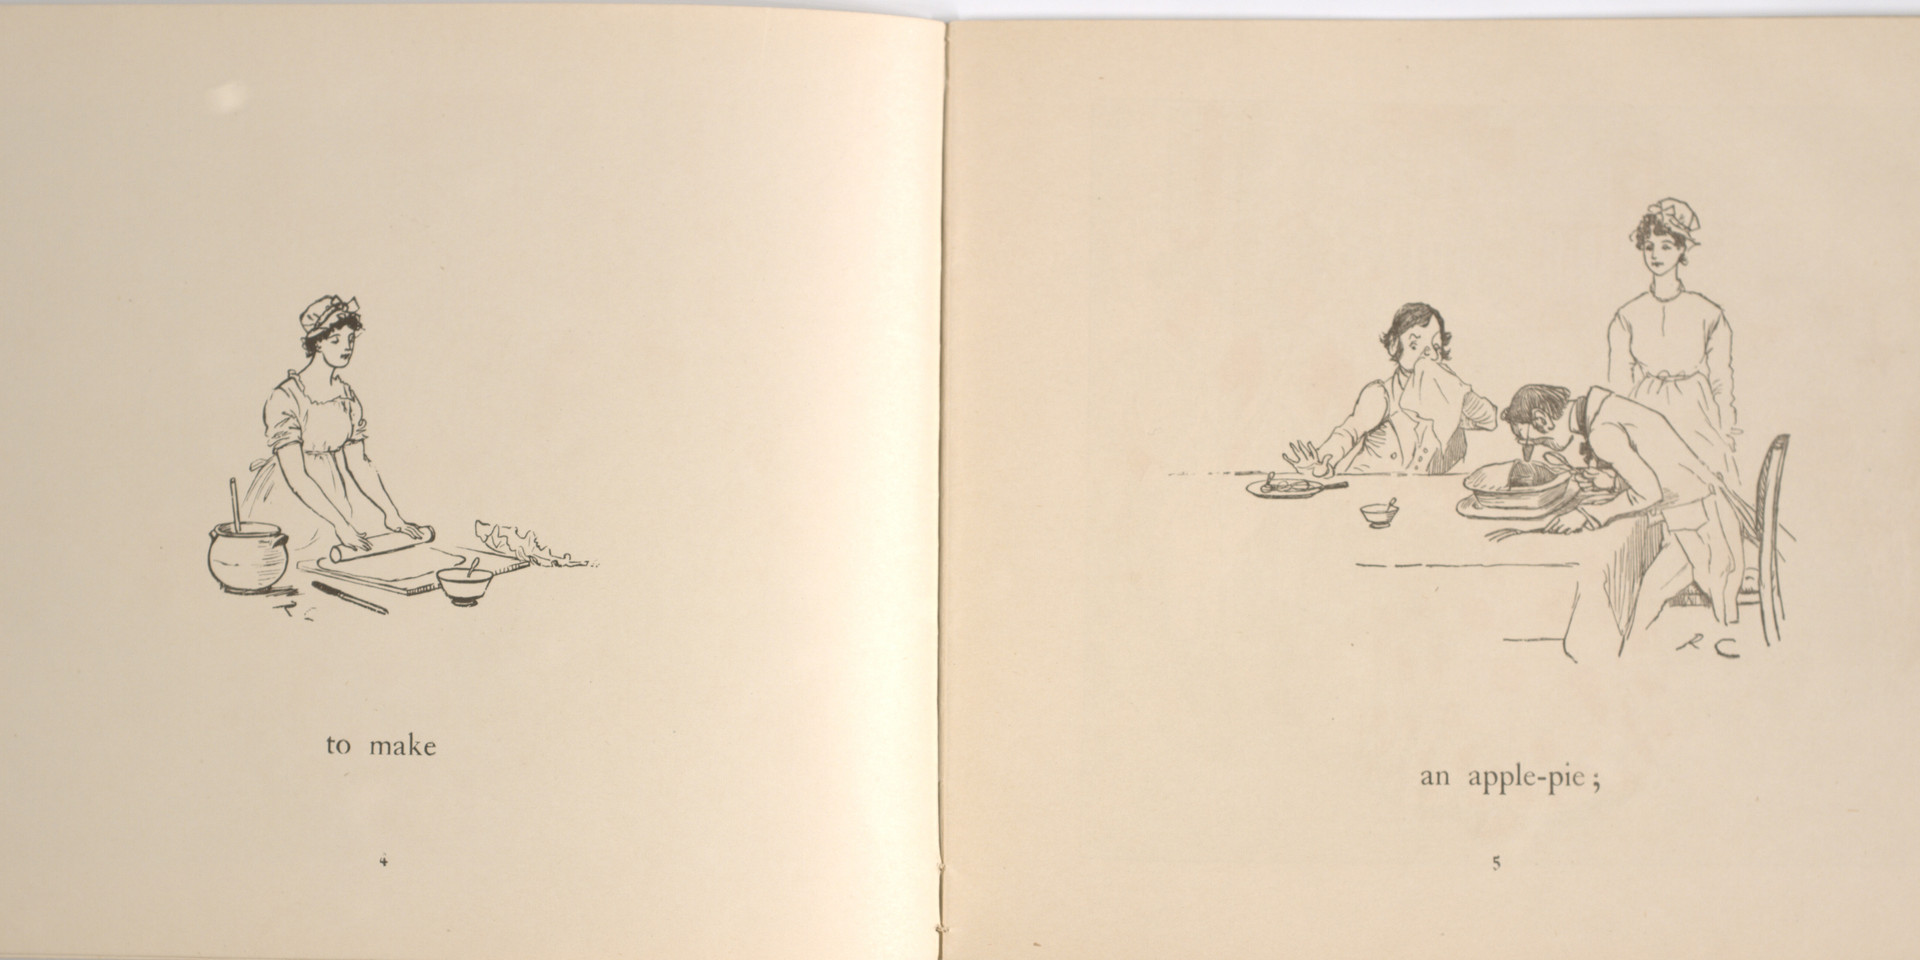 Caldecott, Randolph. The Great Panjandrum Himself. Frederick Warne & Co., 1855. p.1-2. Ryerson University Library and Archives.